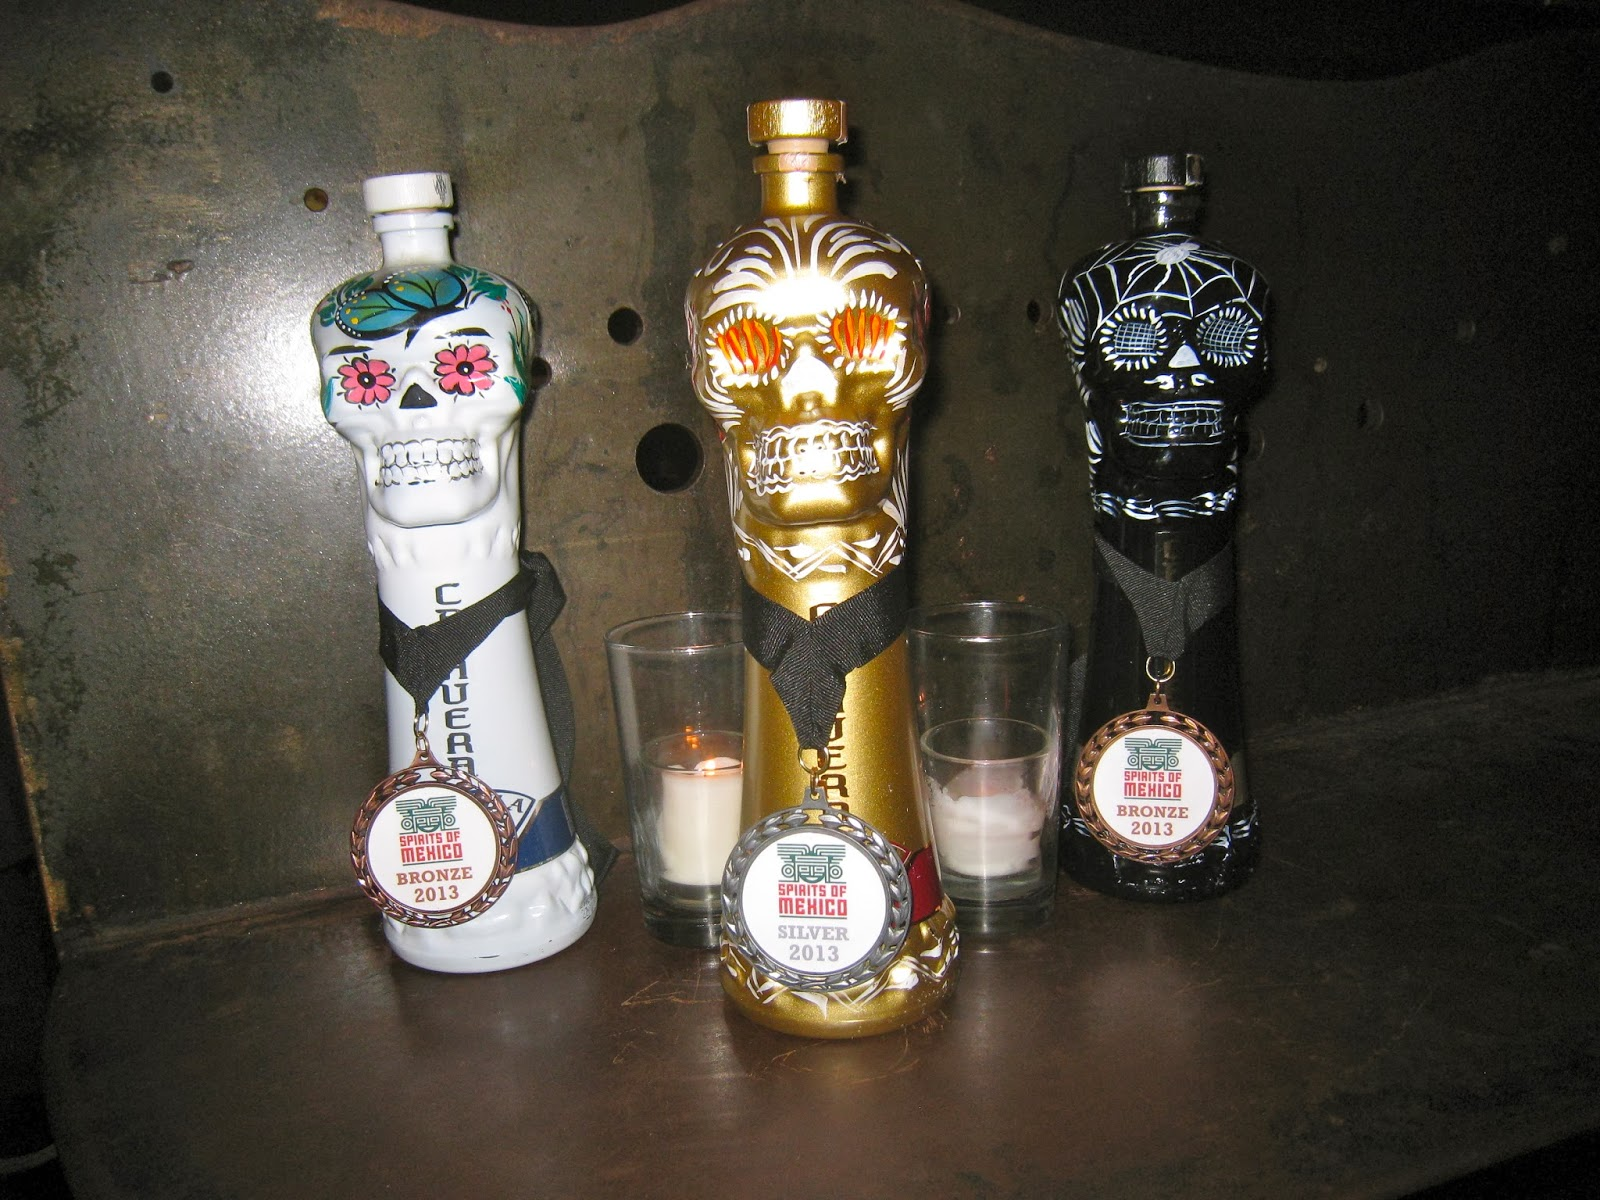 Blogtown Calavera The Venice Tequila